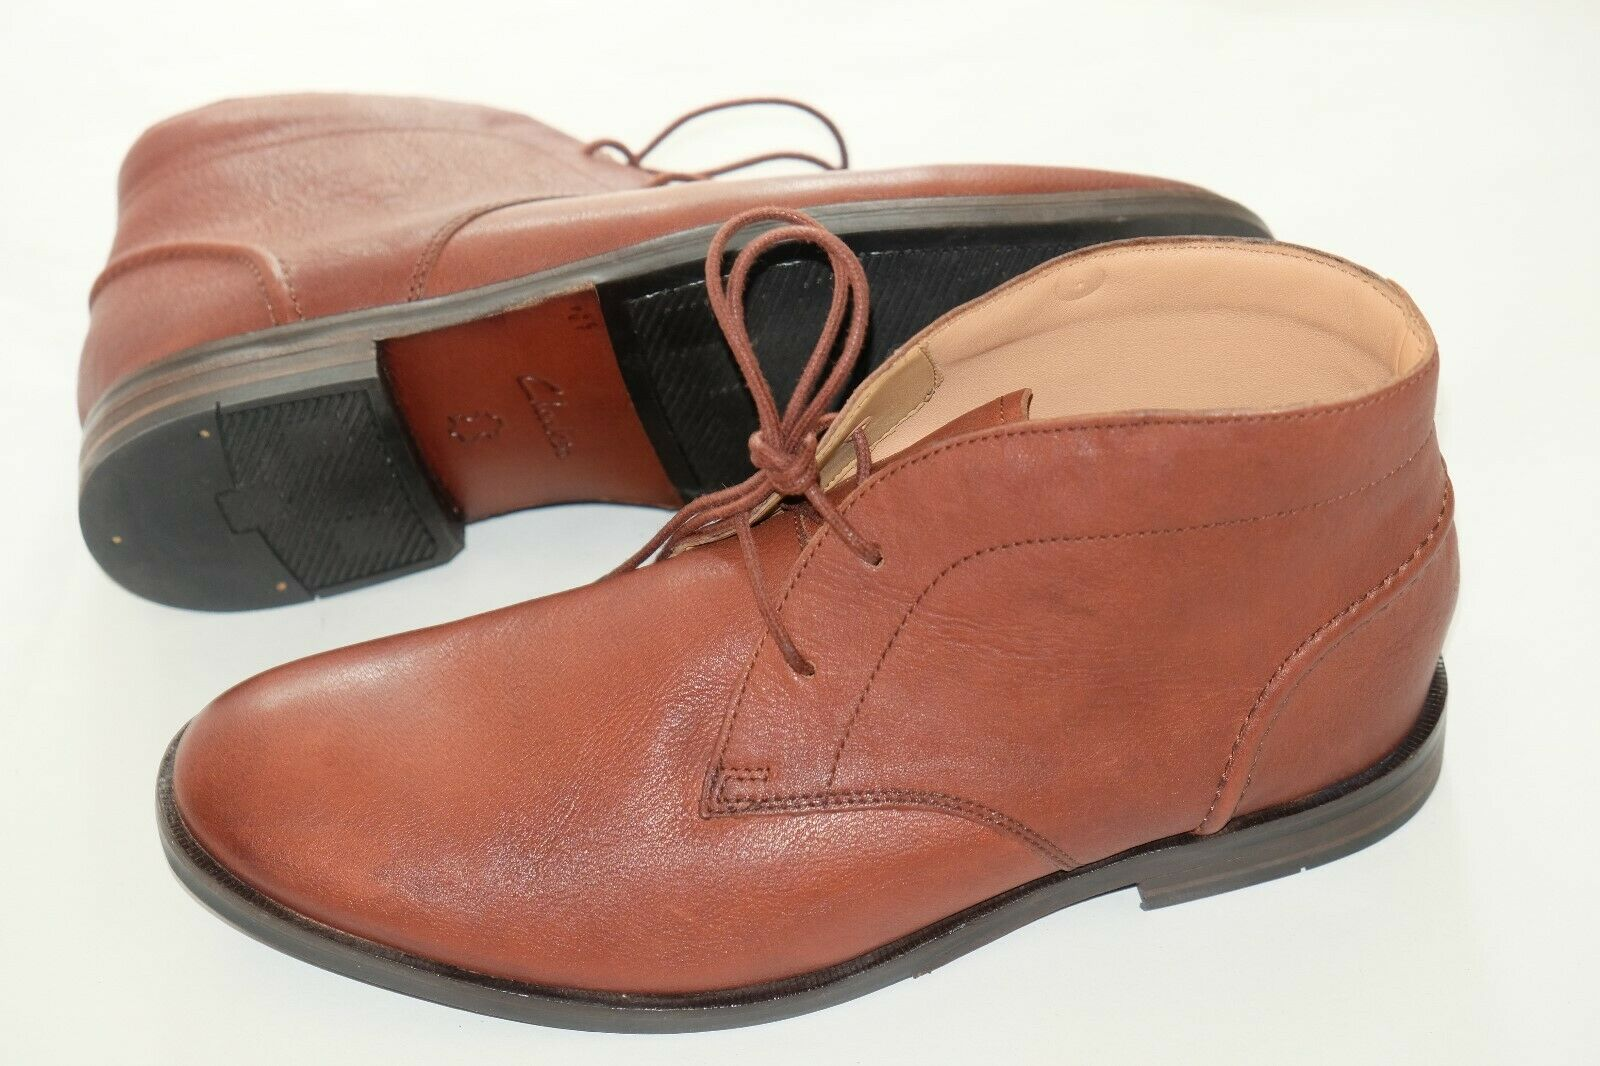 Clarks Tan Leather Mens ankle boots sizes 7/41 - 10.5/45 G RRP